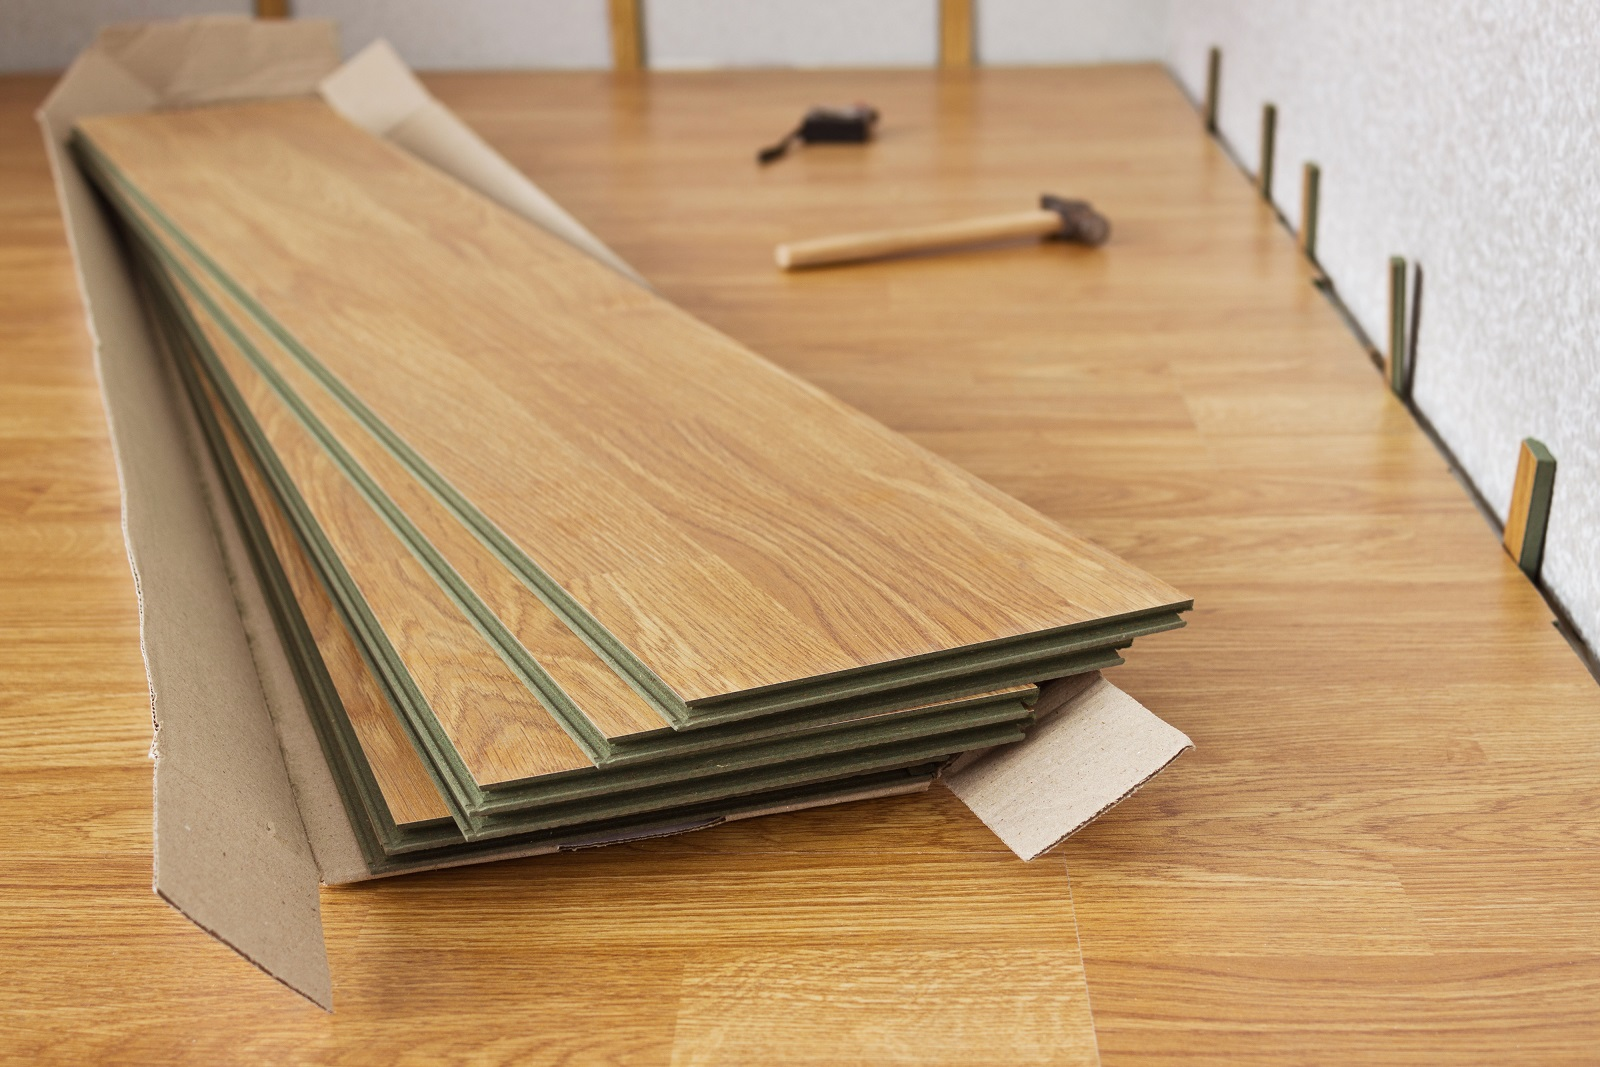 Professional flooring installation in a North Royalton, OH home